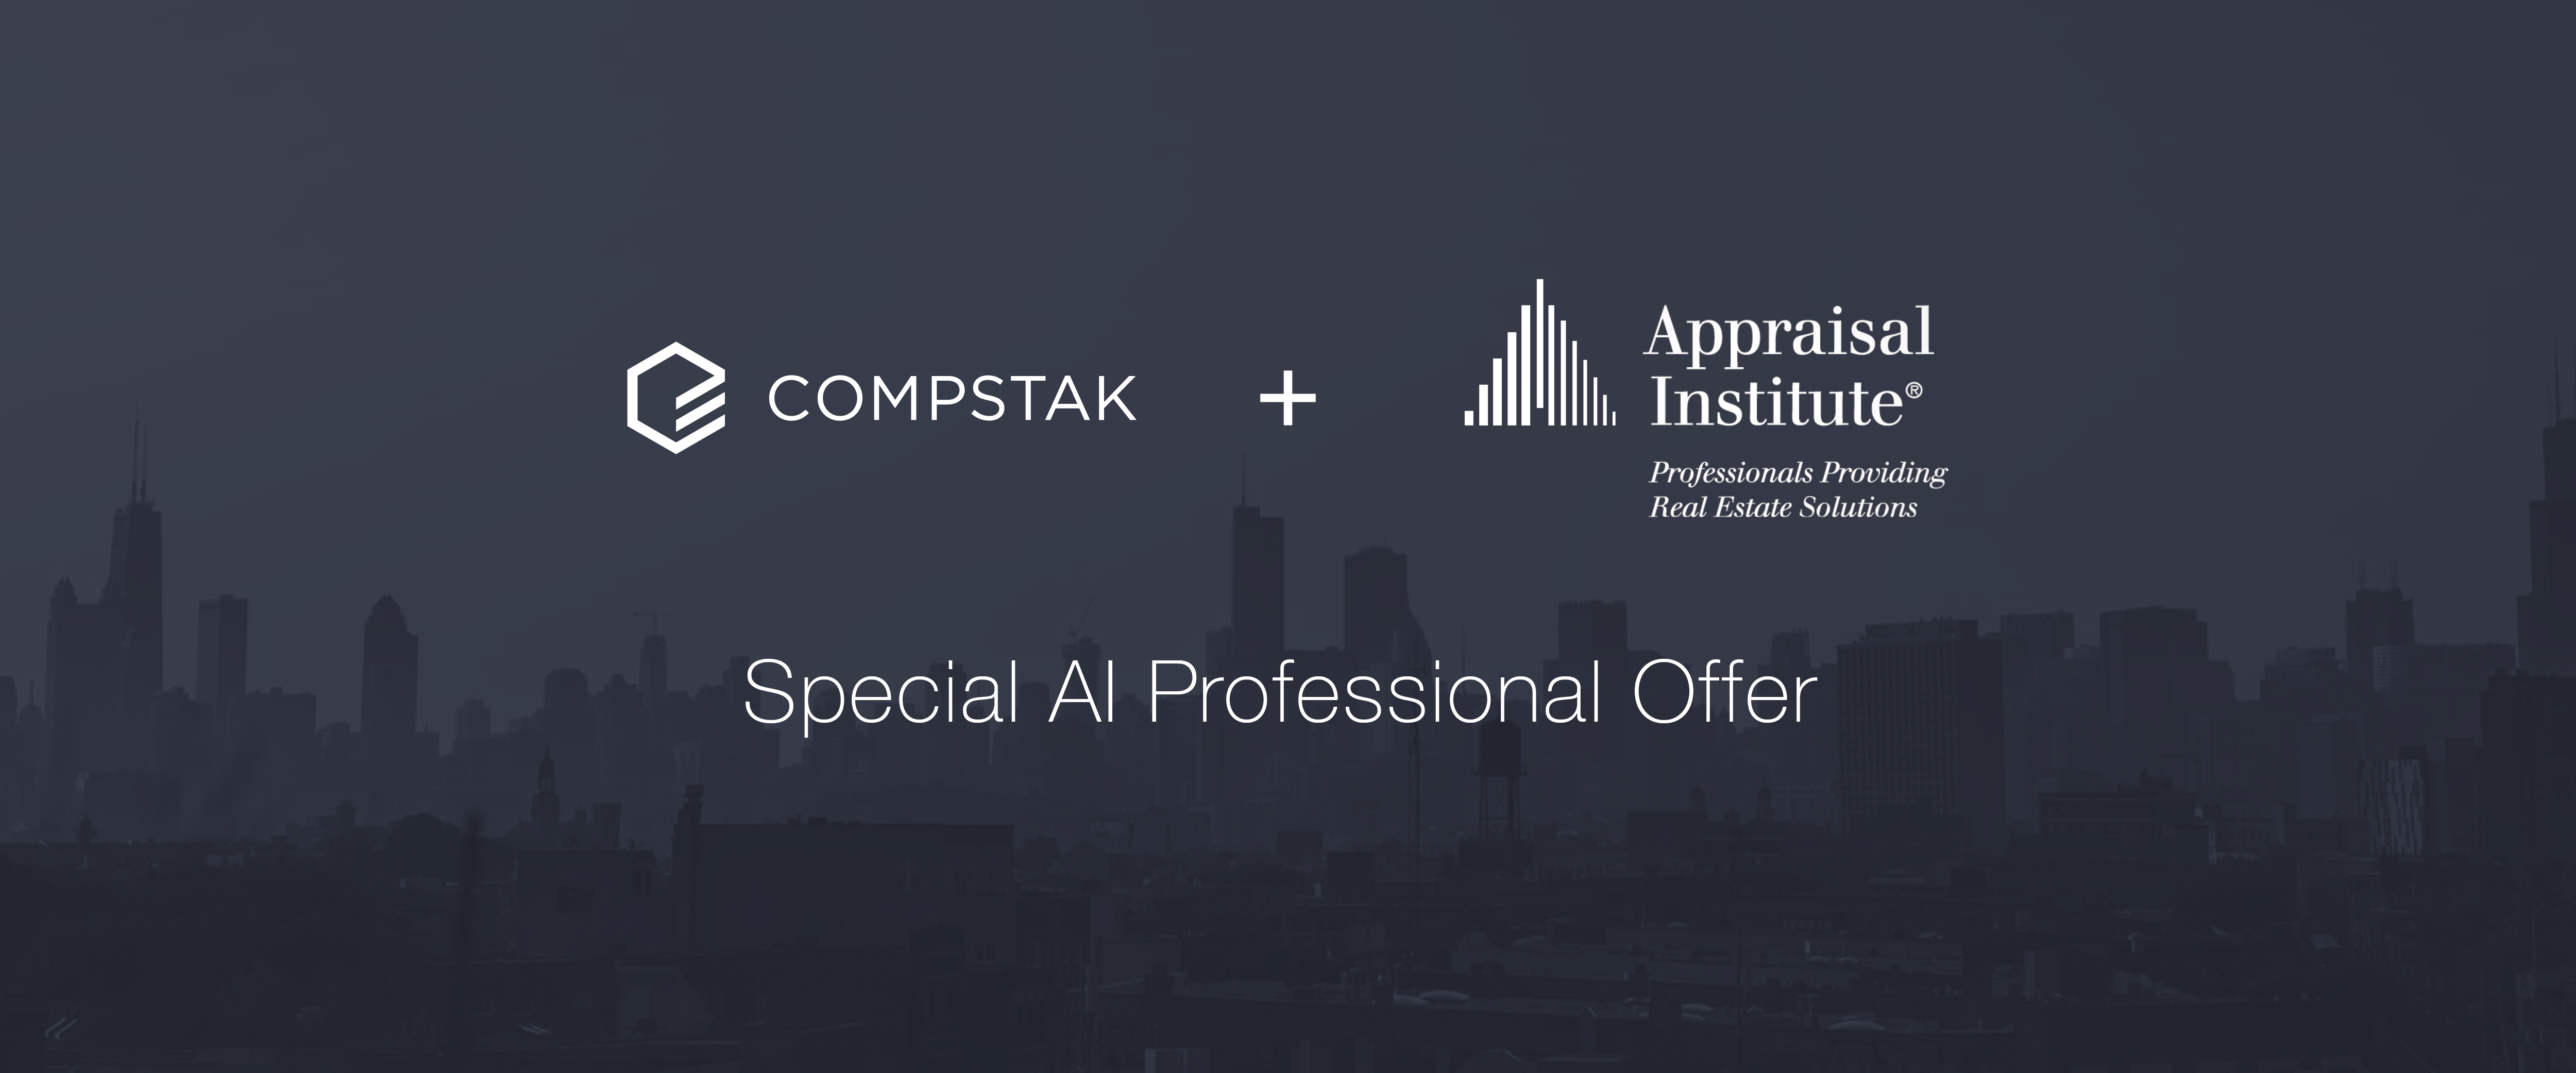 CompStak and Appraisal Institute